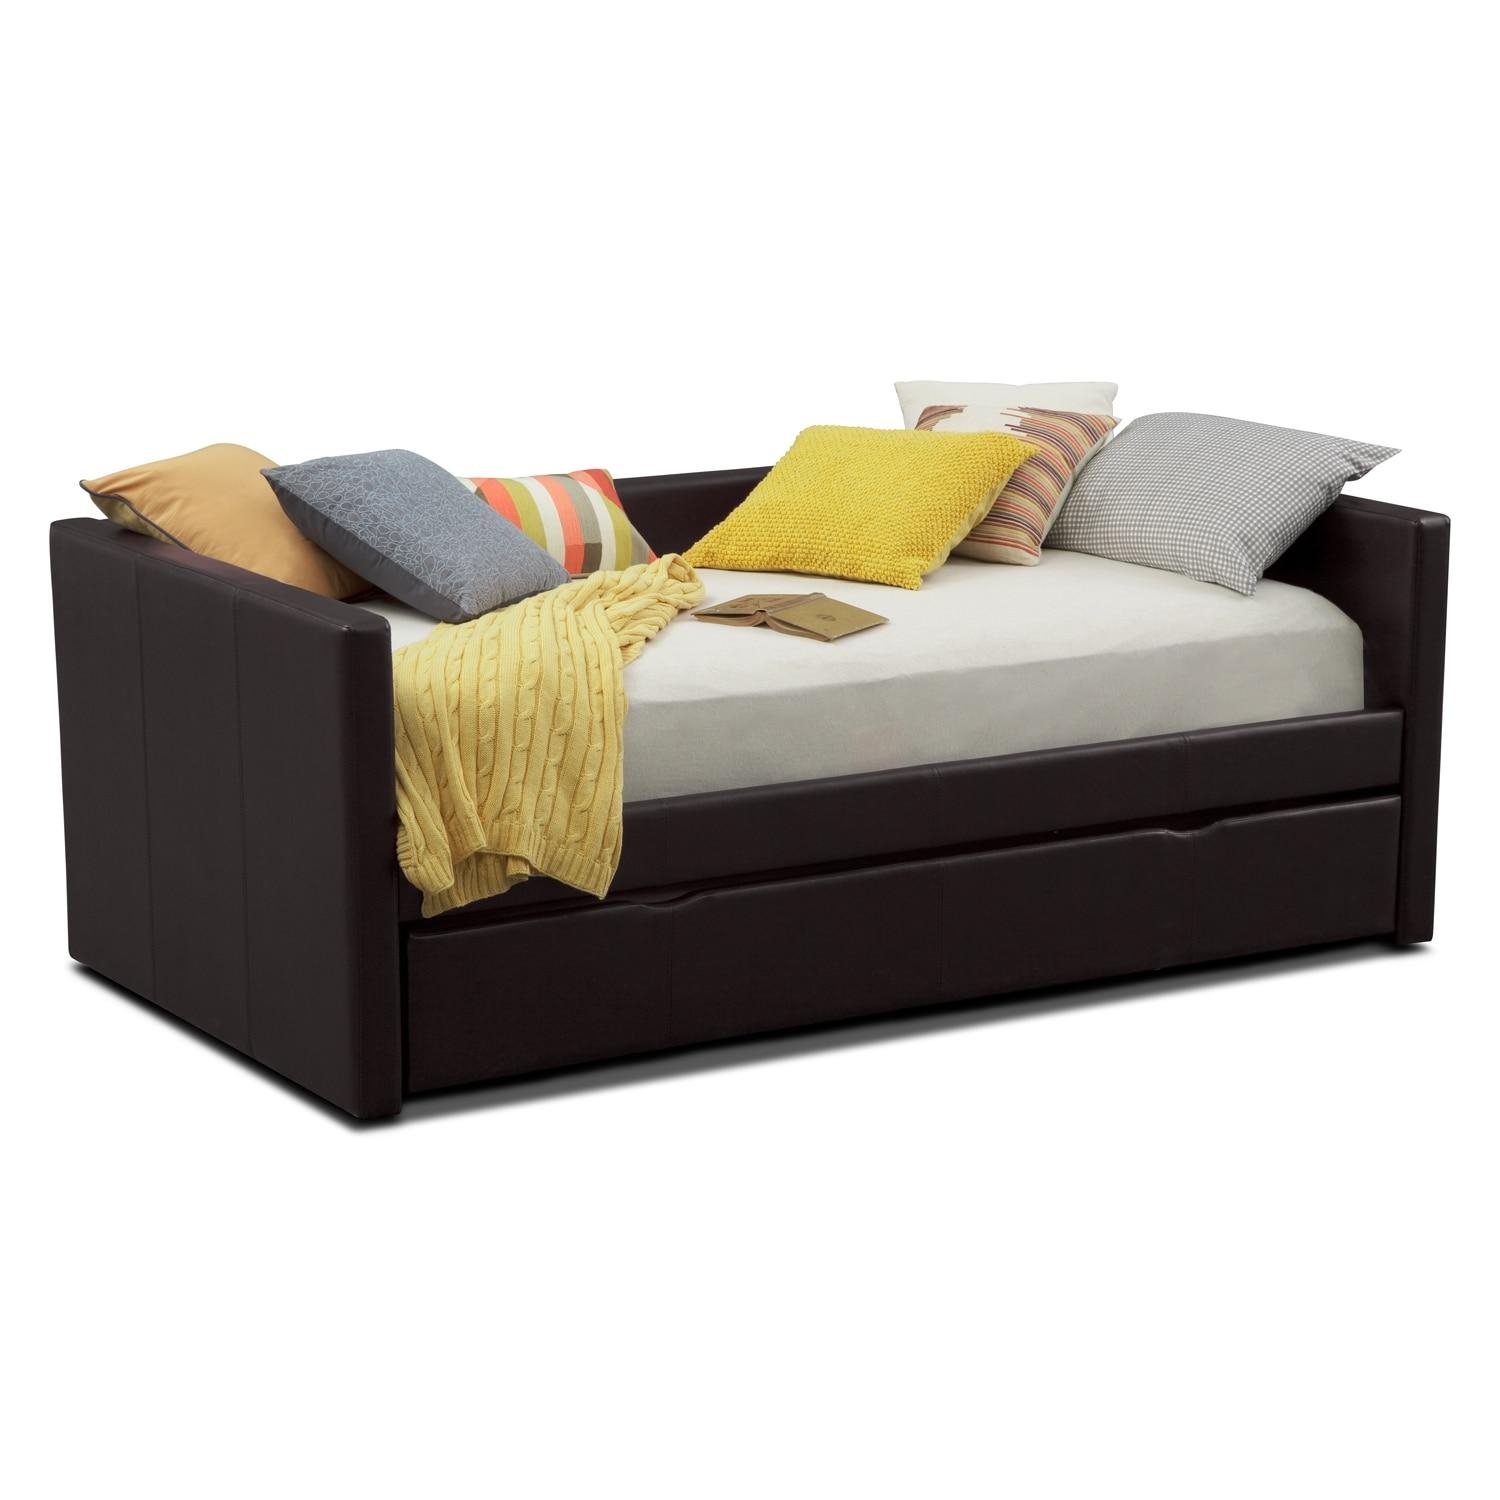 20 Photos Sofas Daybed With Trundle Sofa Ideas